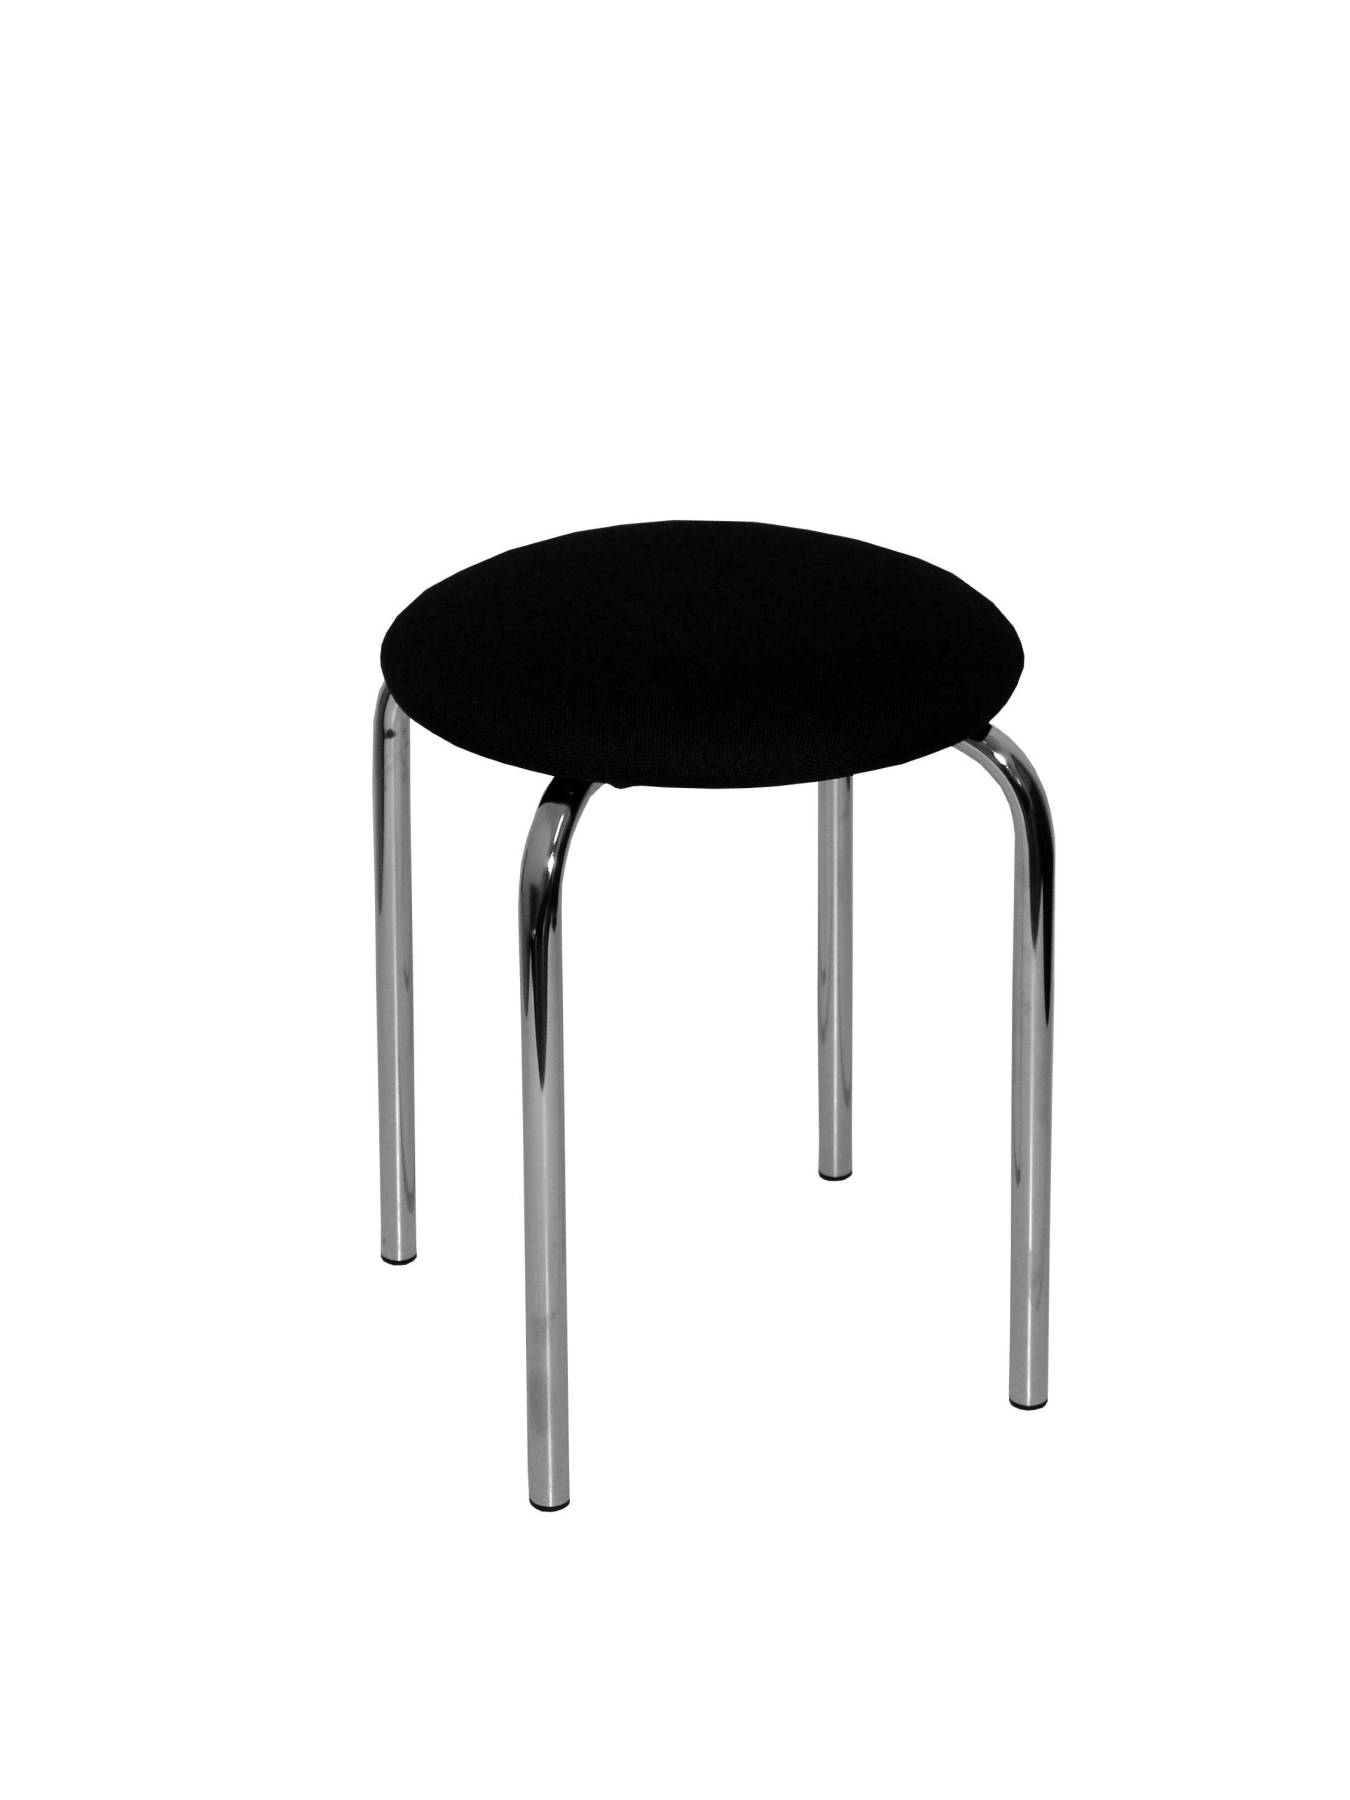 Pack Of 4 Stools Small Fixed And Structure Chrome Seat Upholstered In Fabric ARAN Color Black PIQUERAS And C